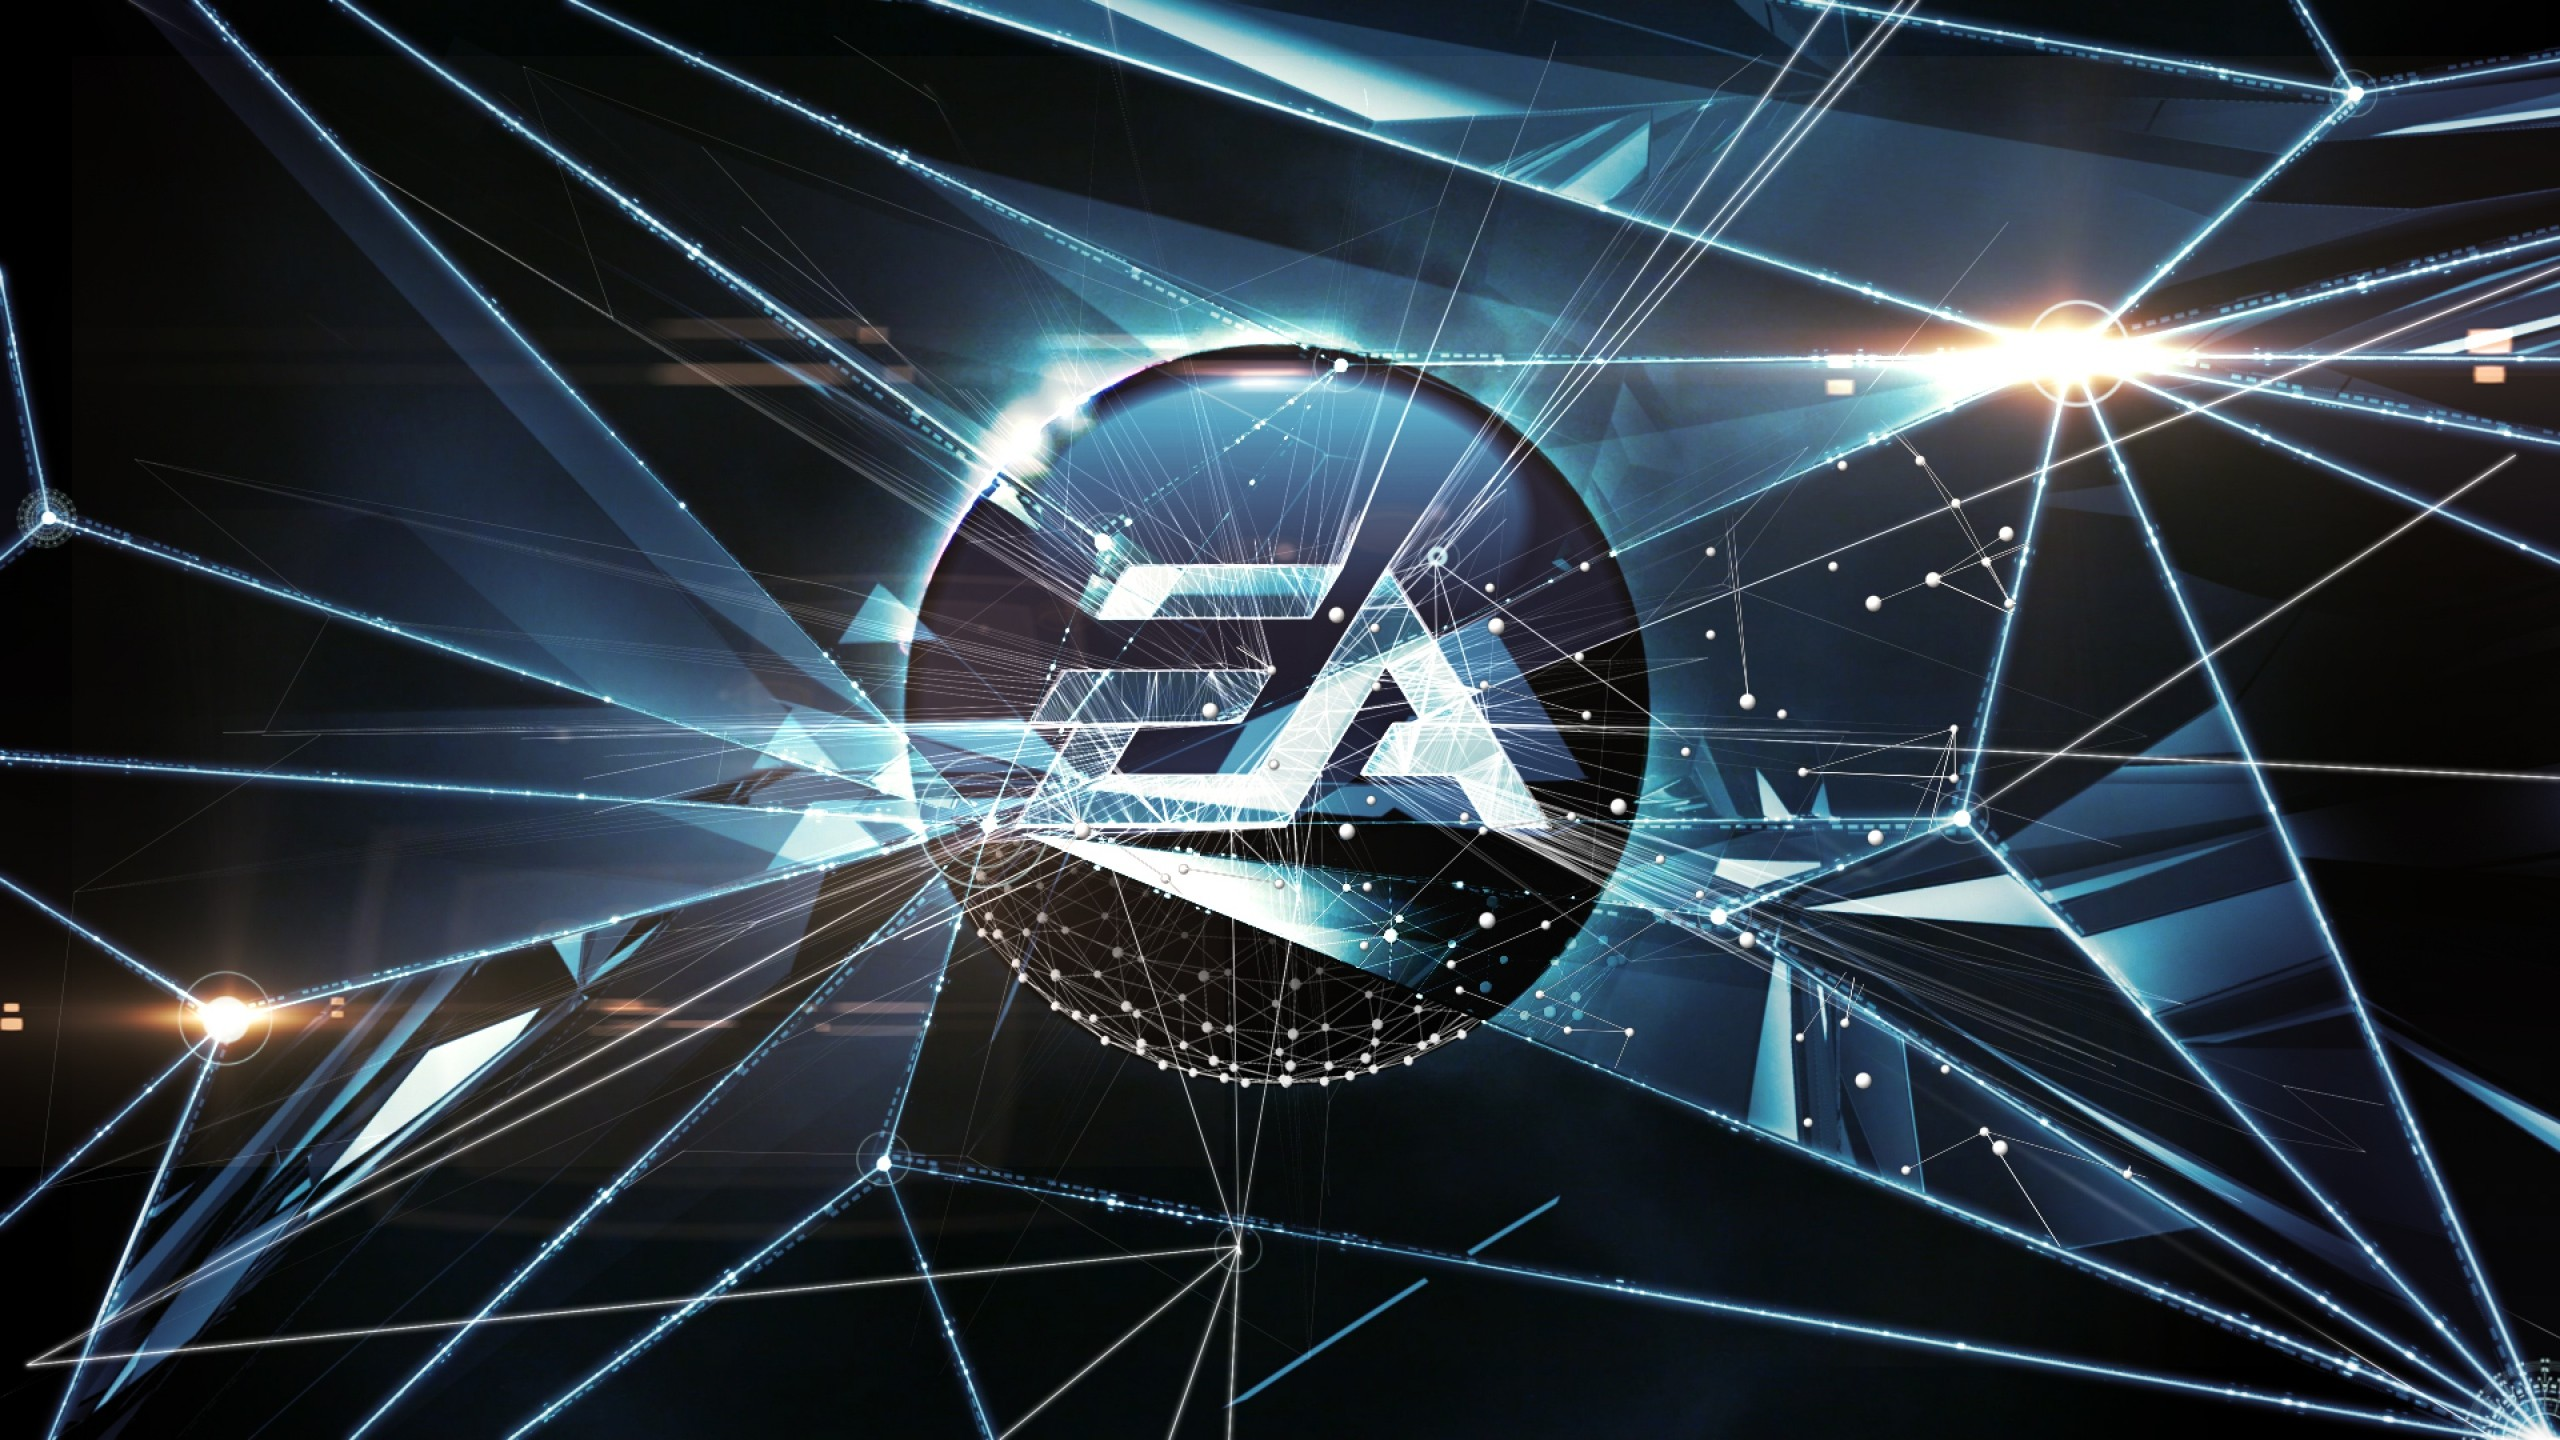 2560x1440  Wallpaper electronic arts, art, corporation, logo, video games